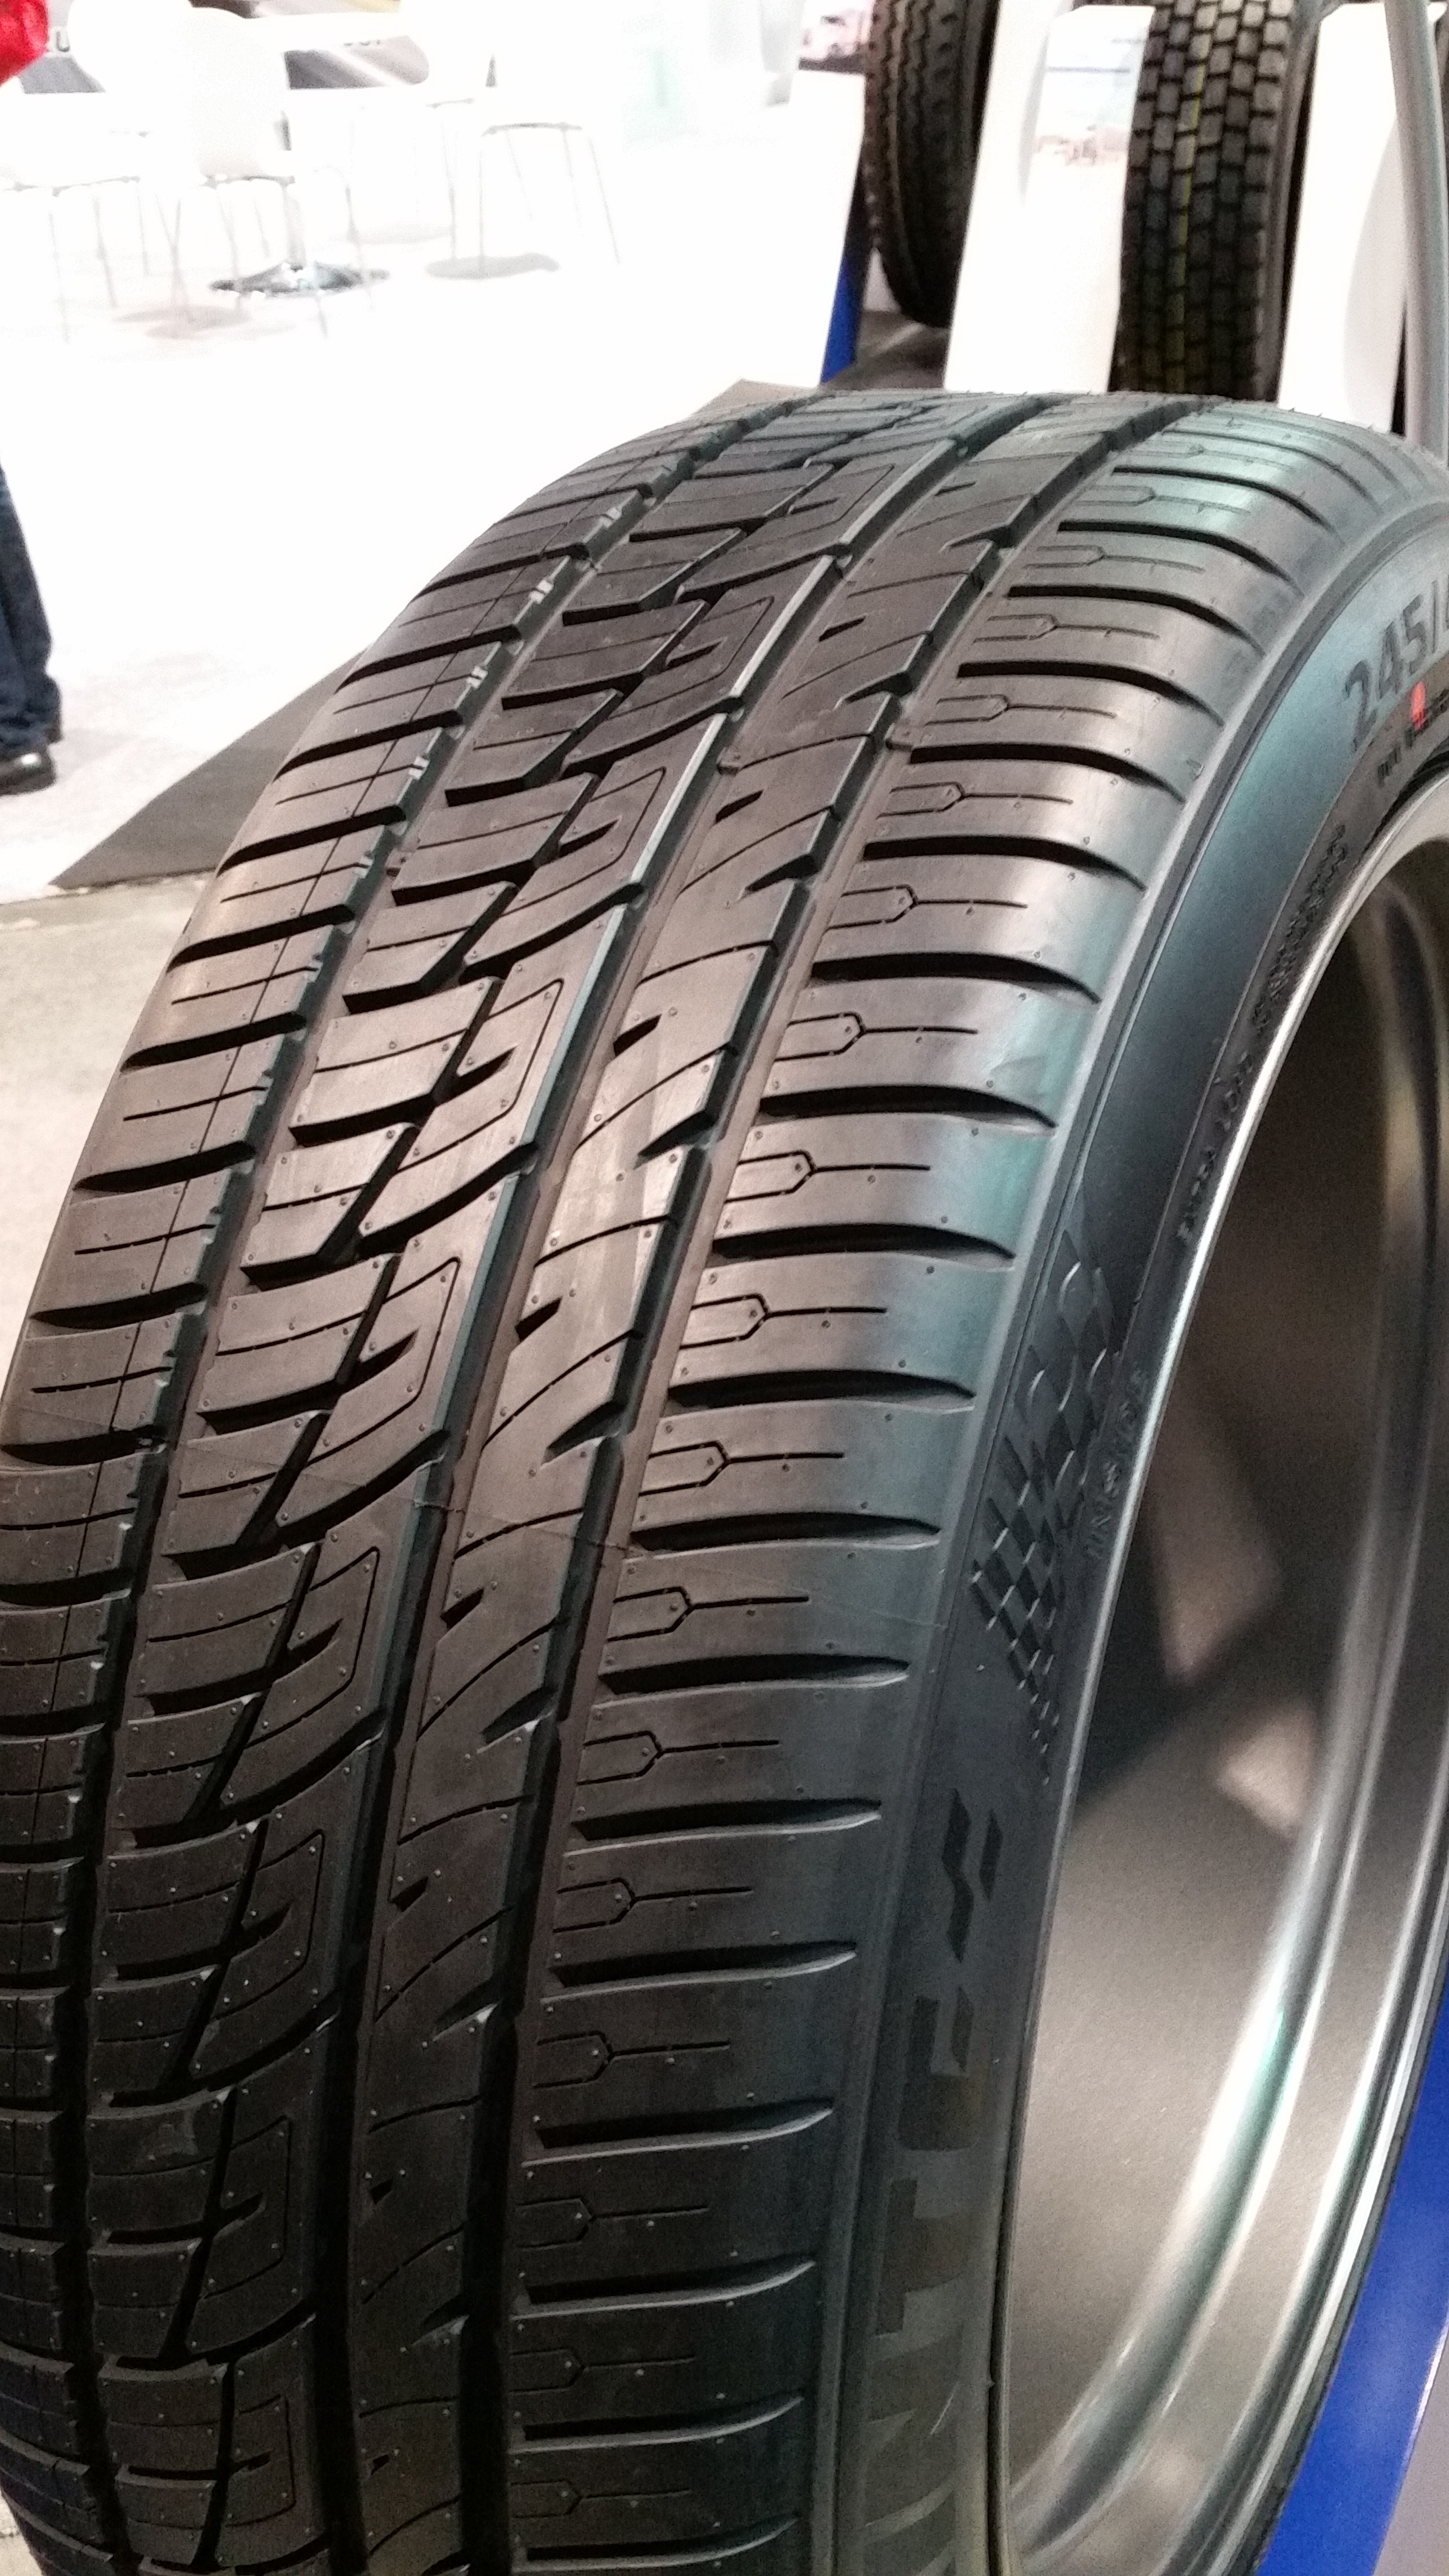 Delinte's New SUV Tire Takes the SEMA Show by Storm